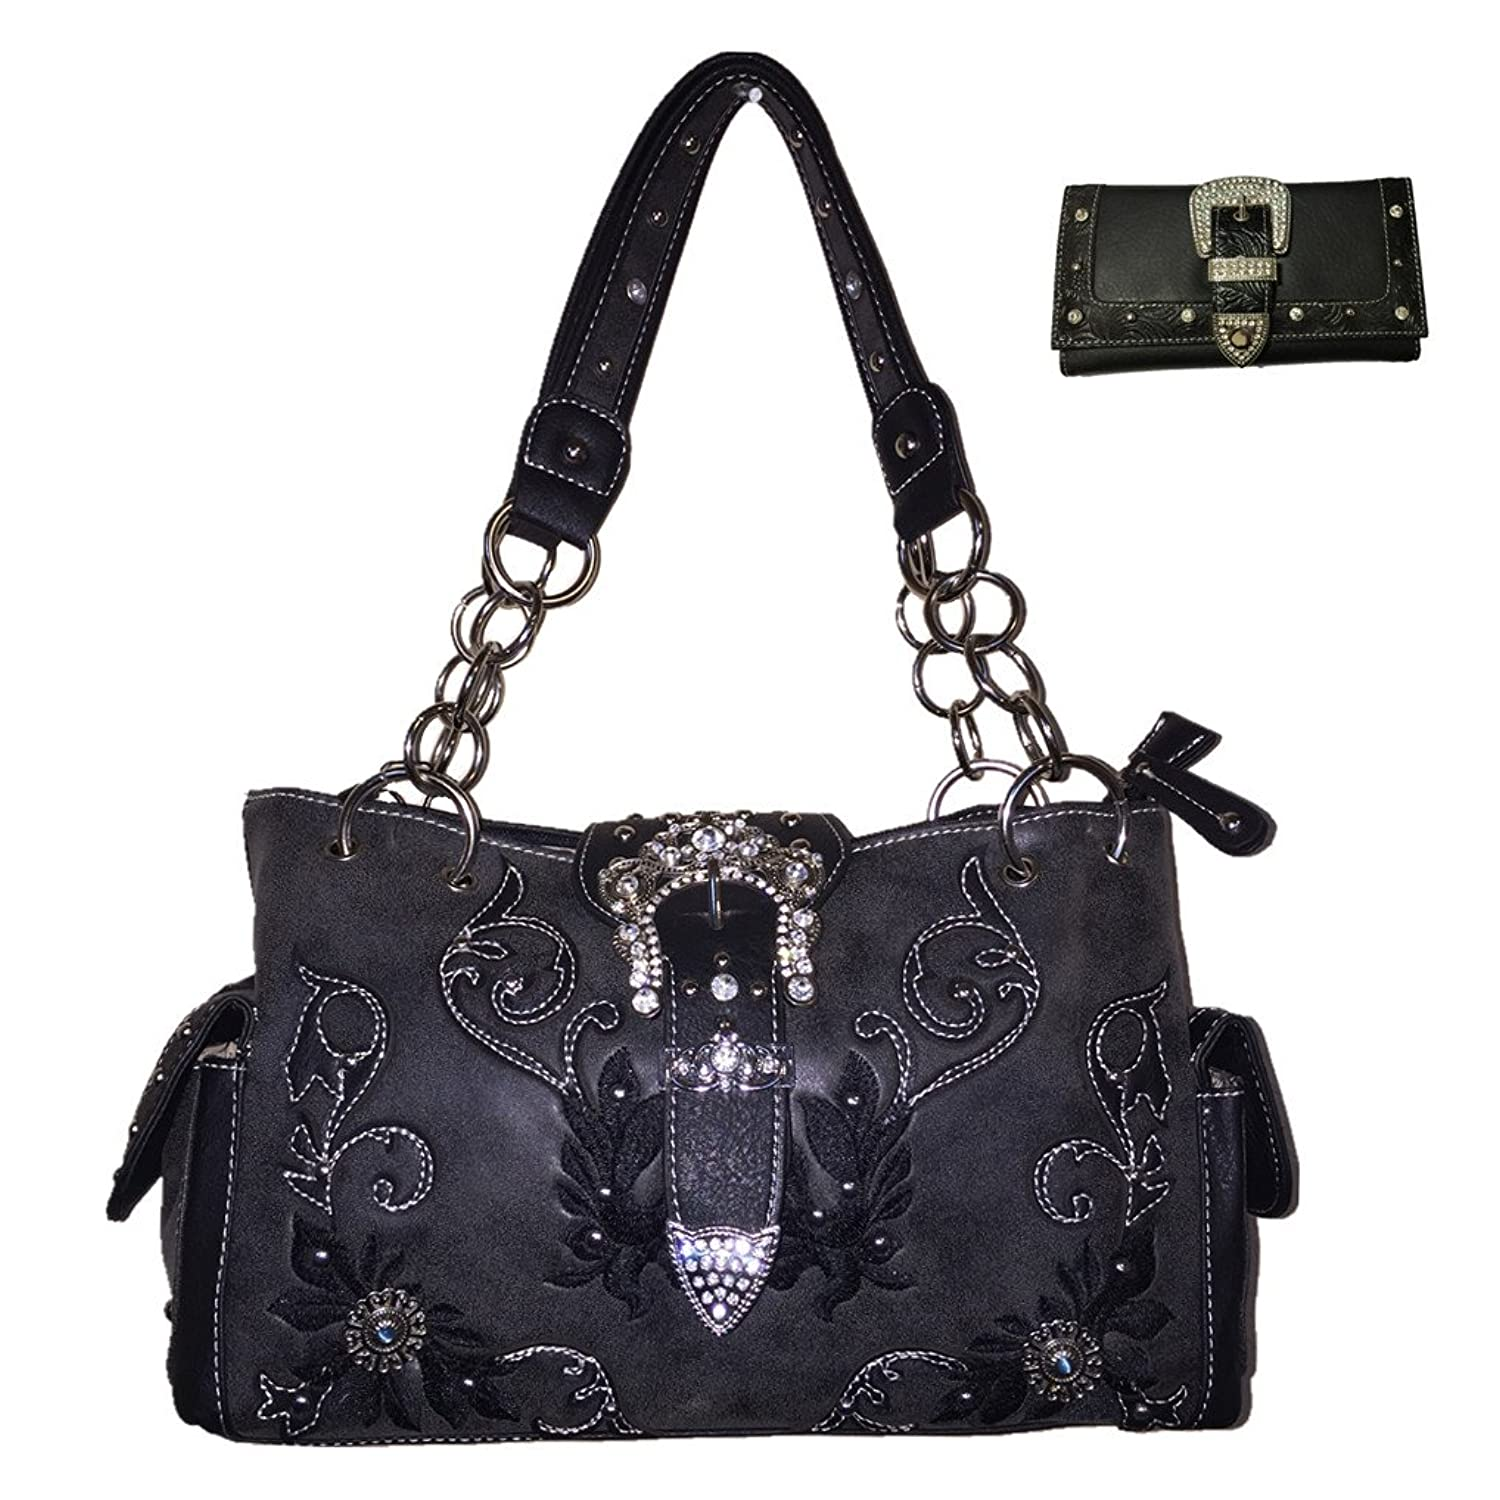 Premium Rhinestone Buckle Concealed Carry Embroidered Handbag and Wallet, Set in 4 Colors